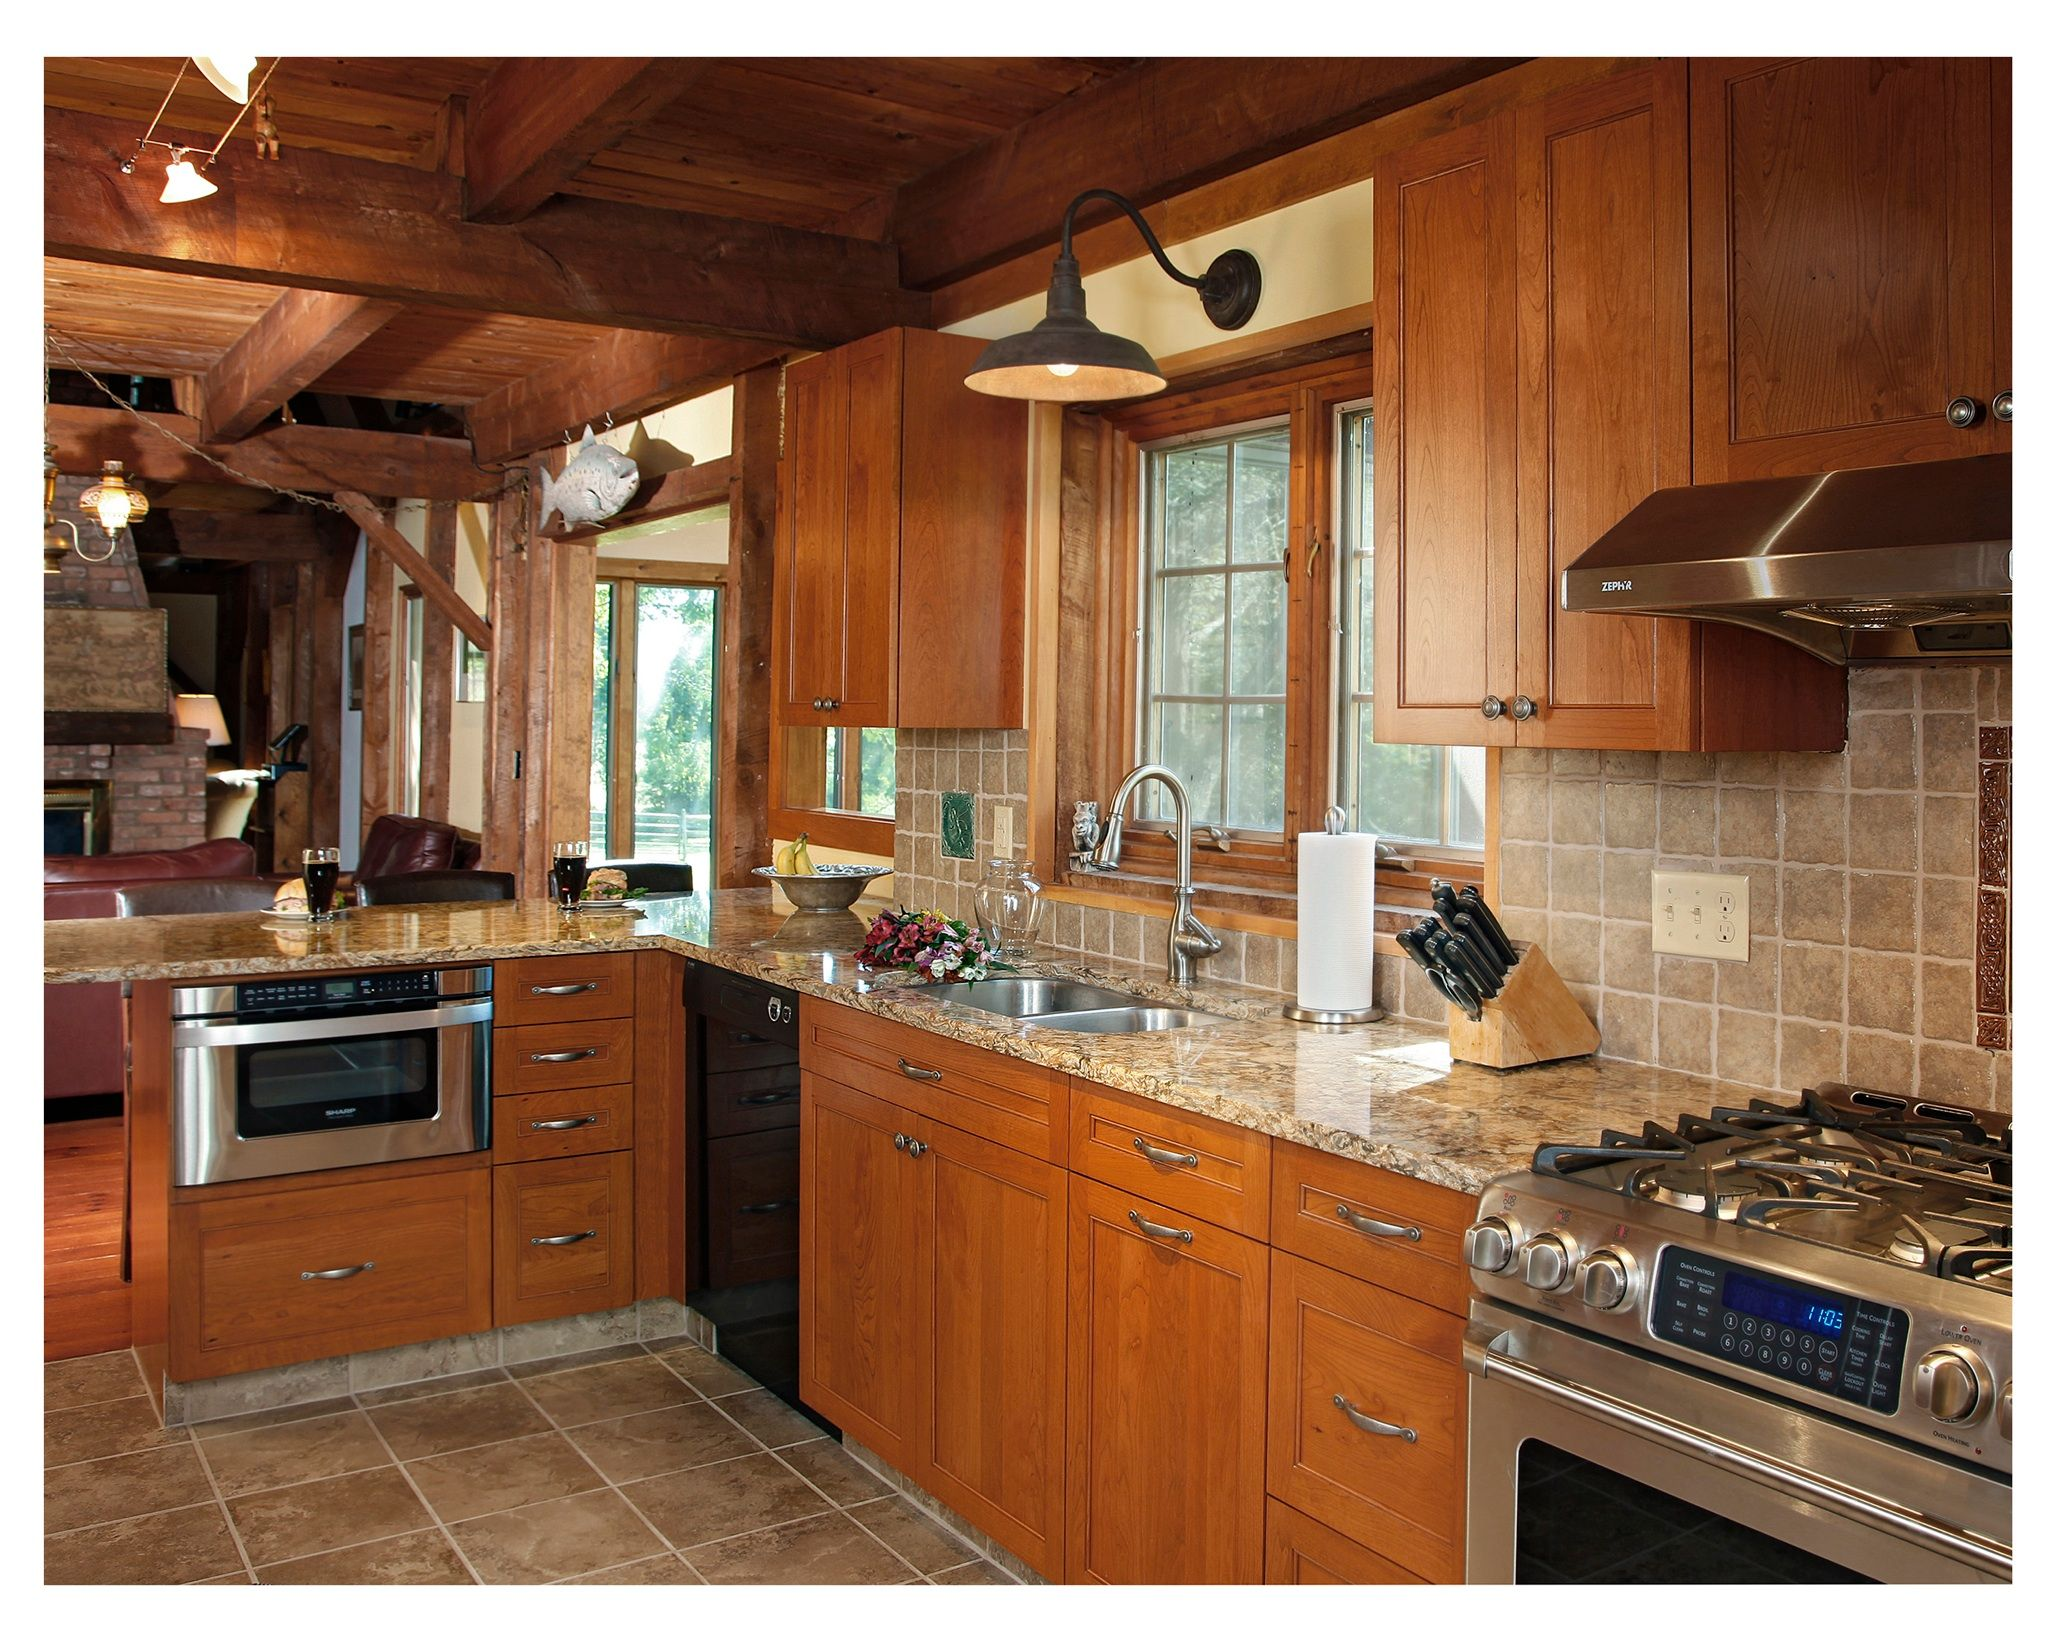 Image result for soapstone countertops | Wooden kitchen ...